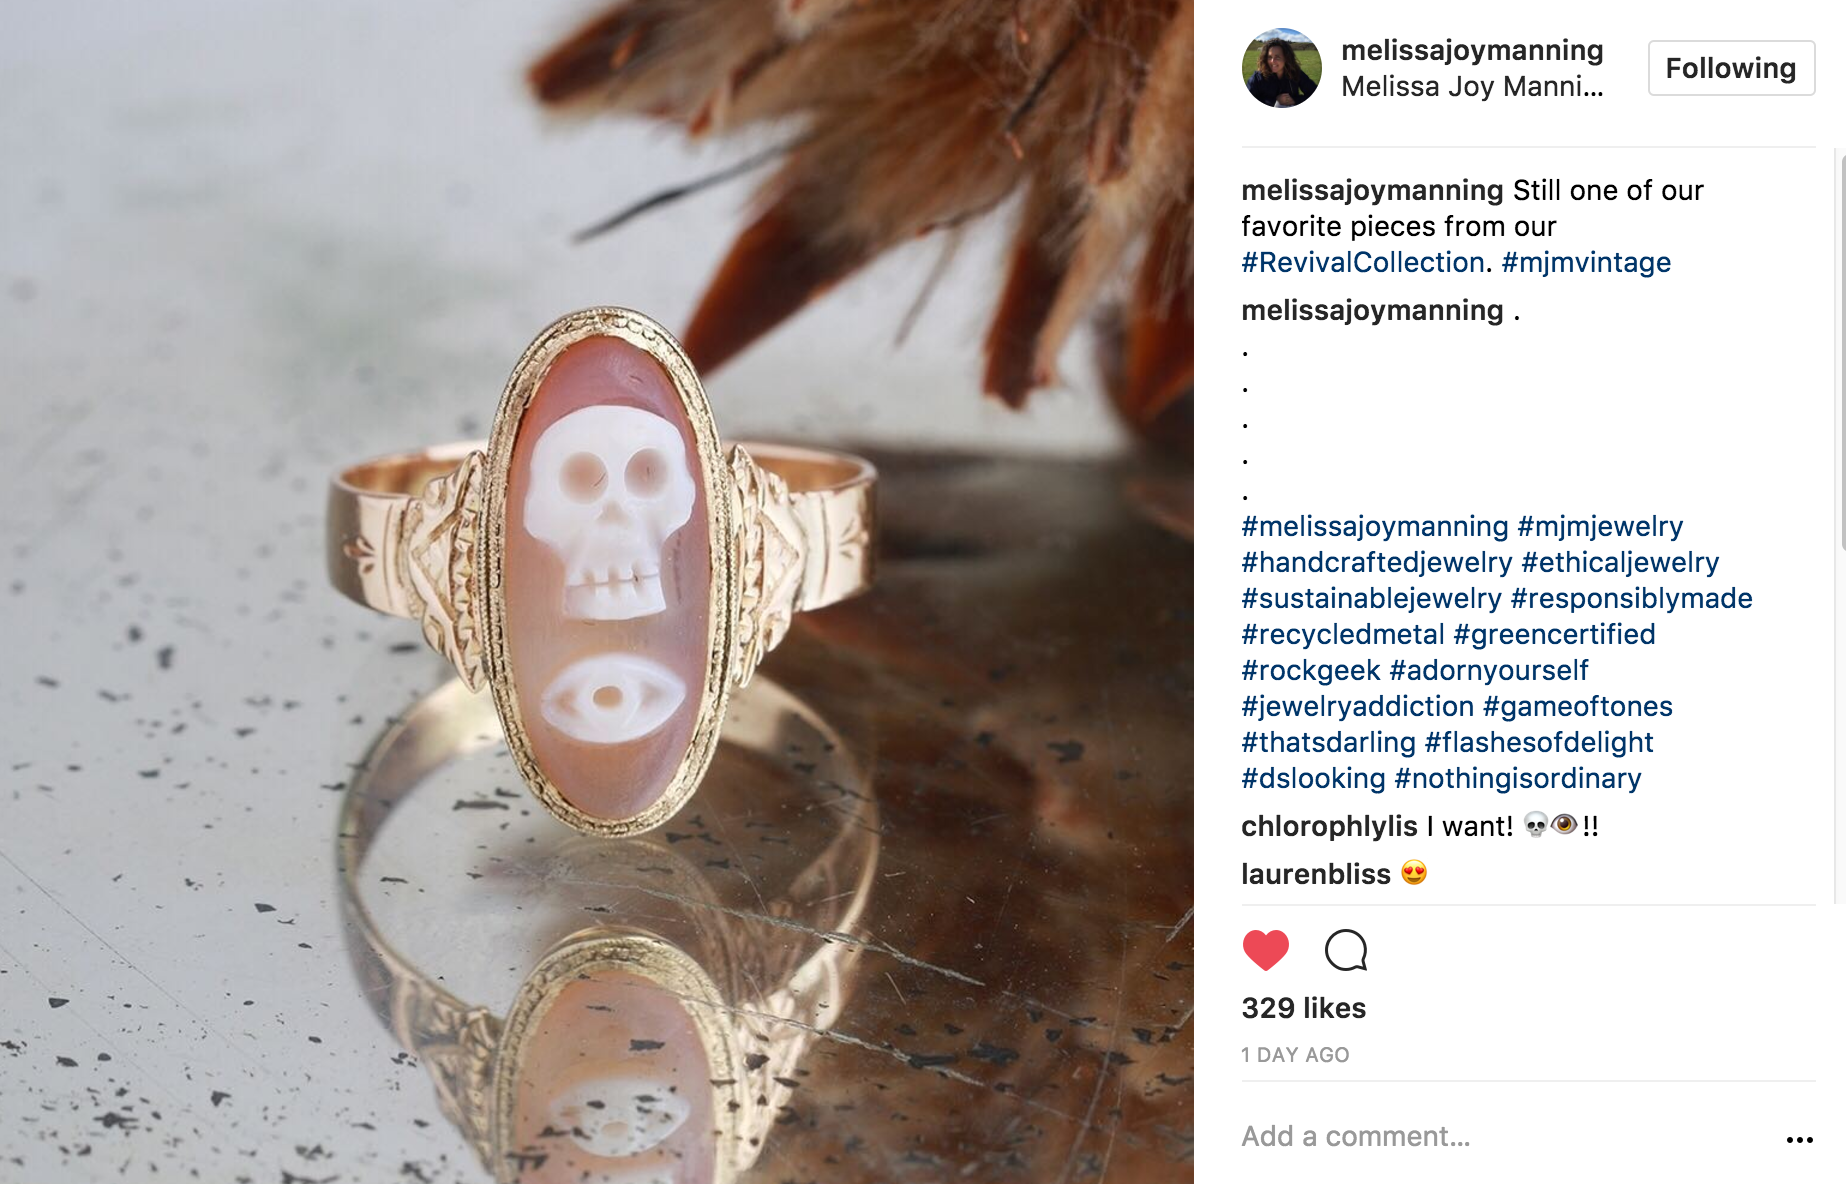 melissajoymanning Instagram of skull ring from revival collection